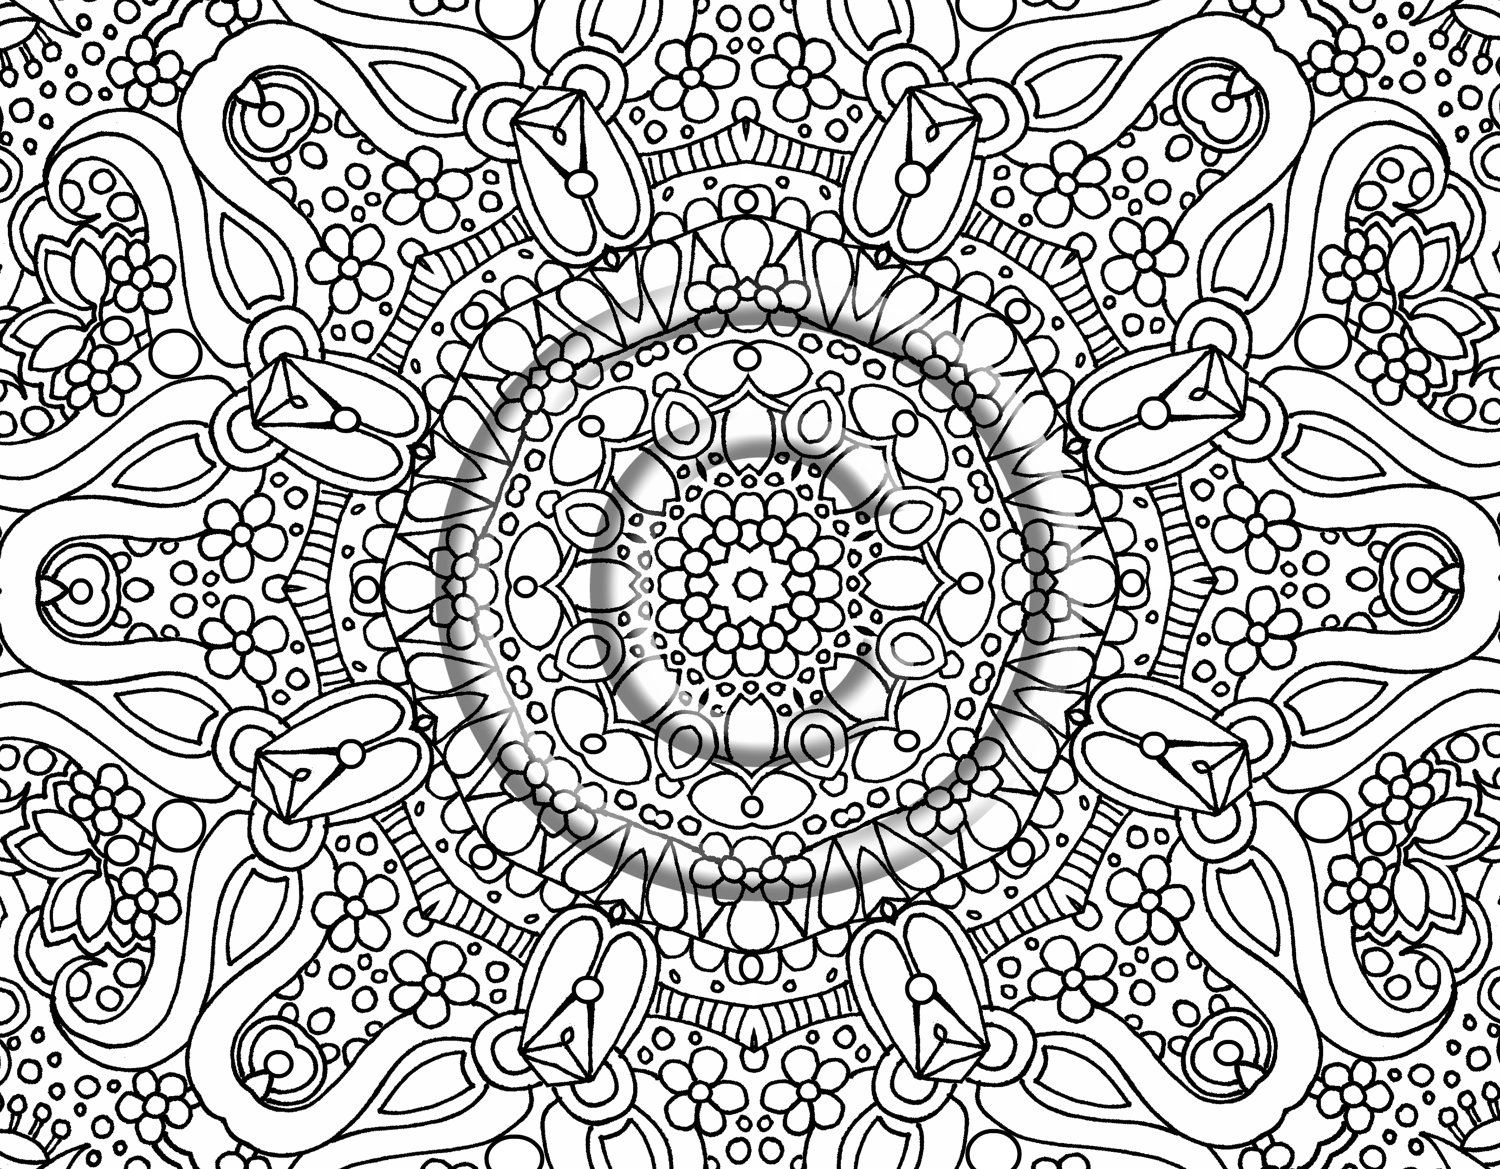 Colouring sheets hard - Hard Coloring Pages